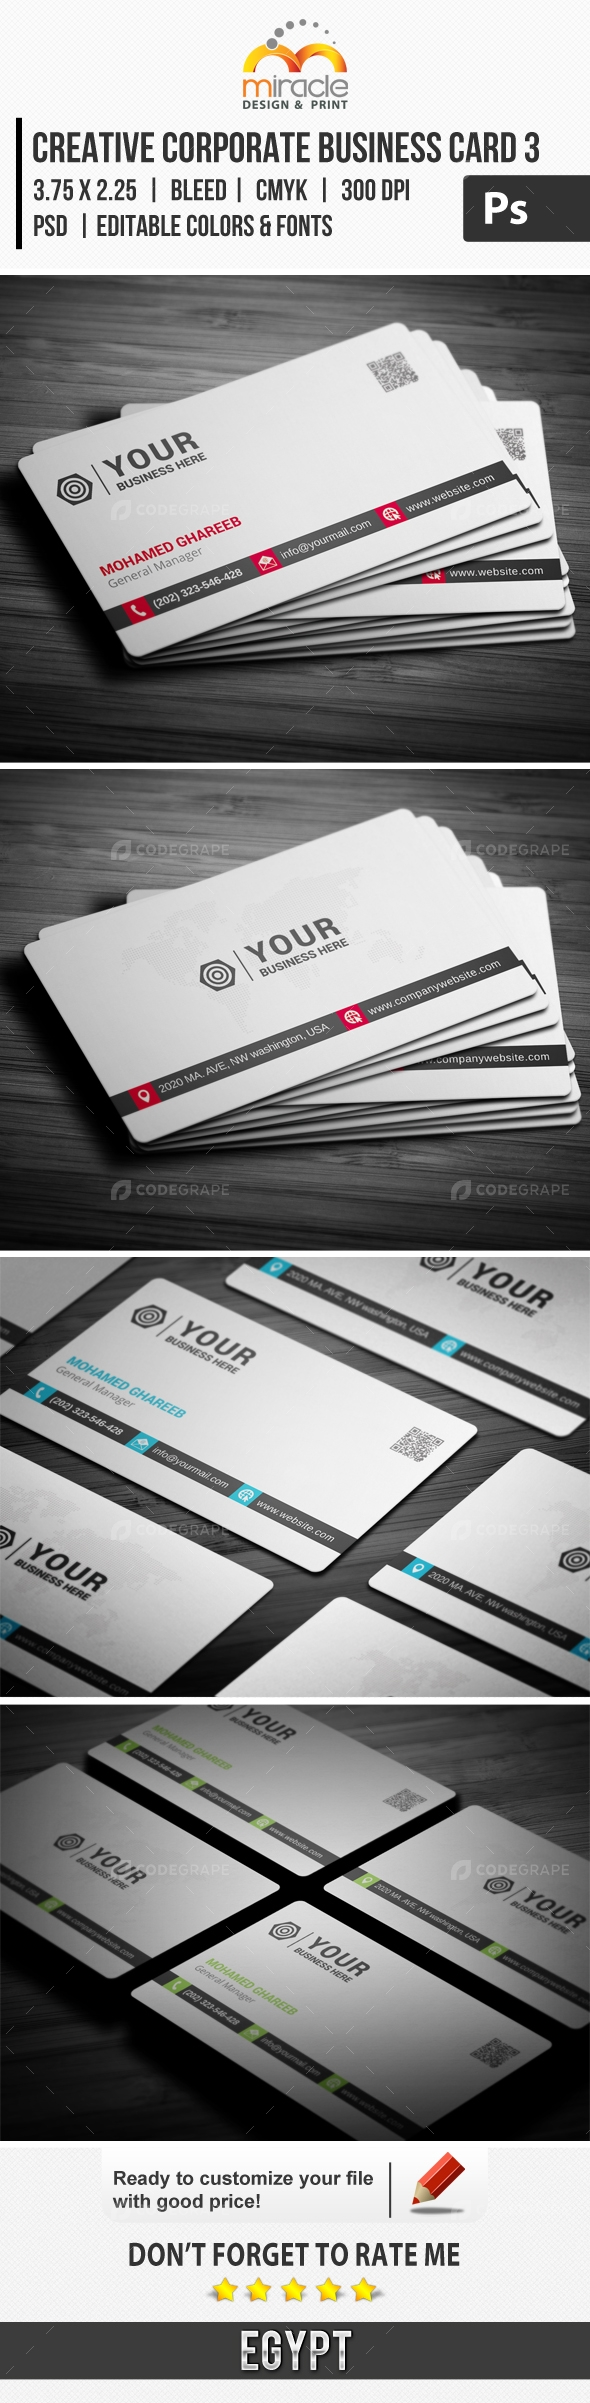 Creative Corporate Business Card 3